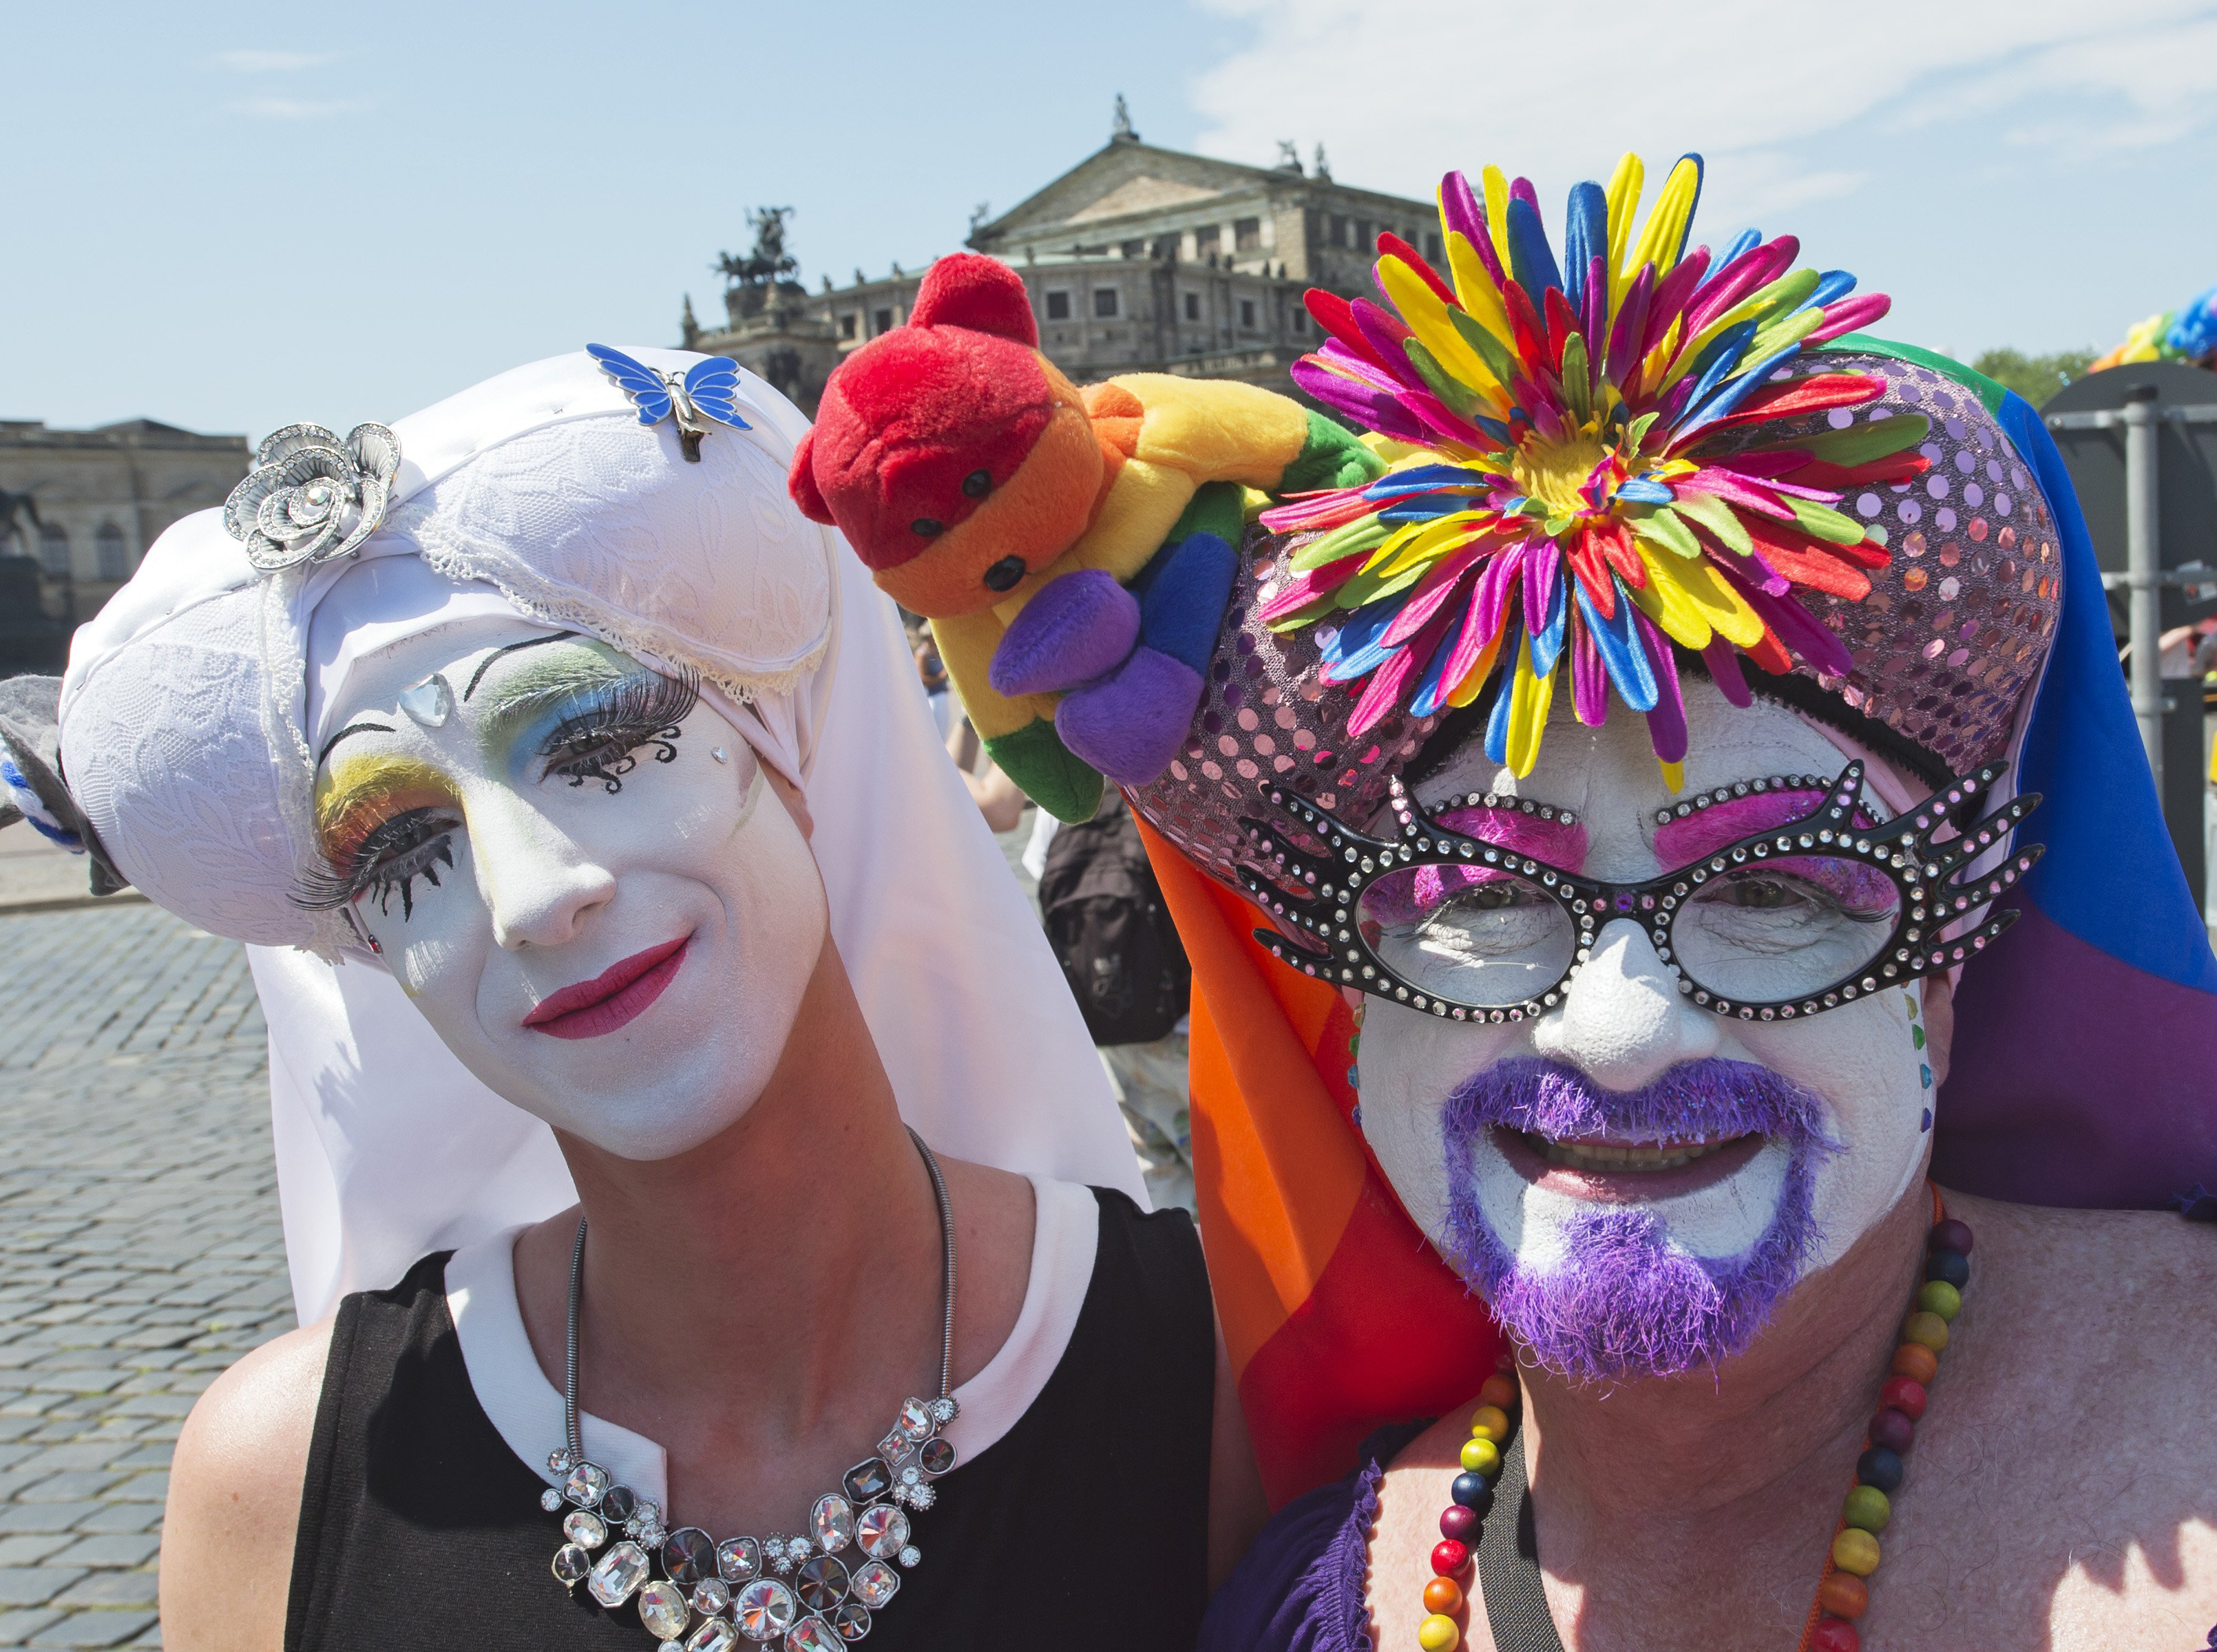 Costumed people attend the Christopher Street Day, CSD, gay pride parade in front of the Semper Opera in Dresden, Germany on June 6, 2015.